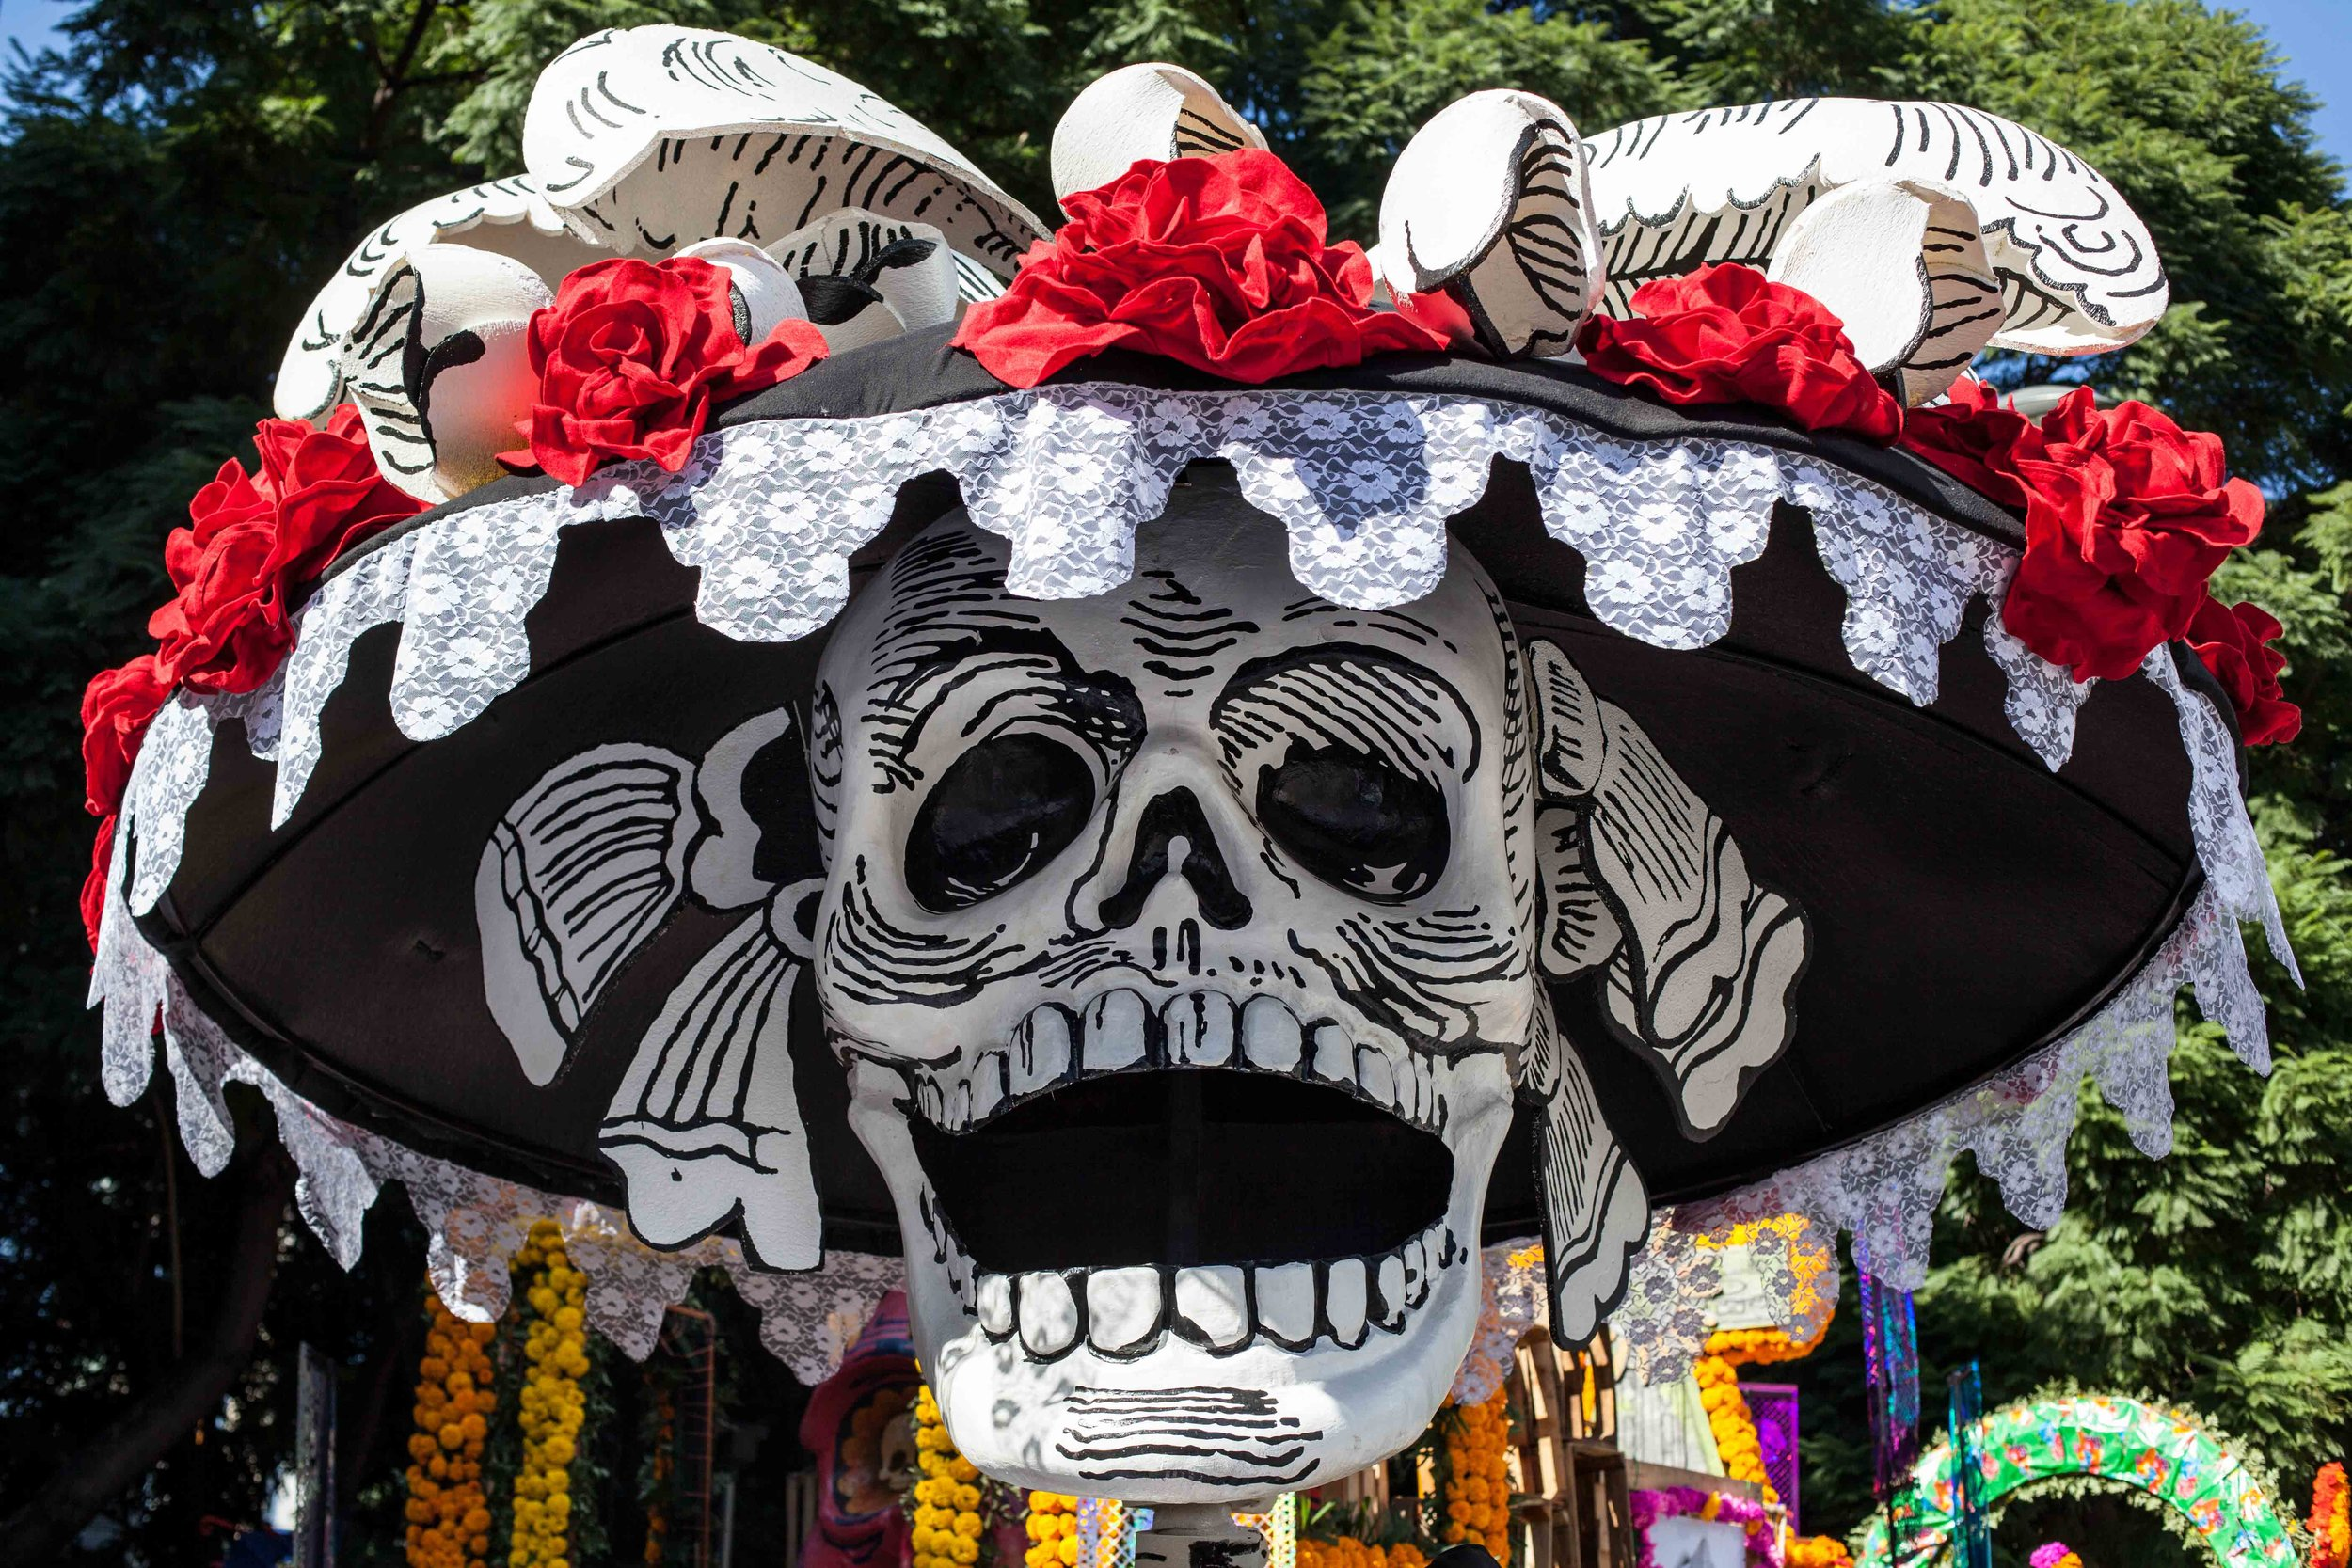 In 2017 Mexico City held it's first Day of the Dead/Día de Muertos parade.